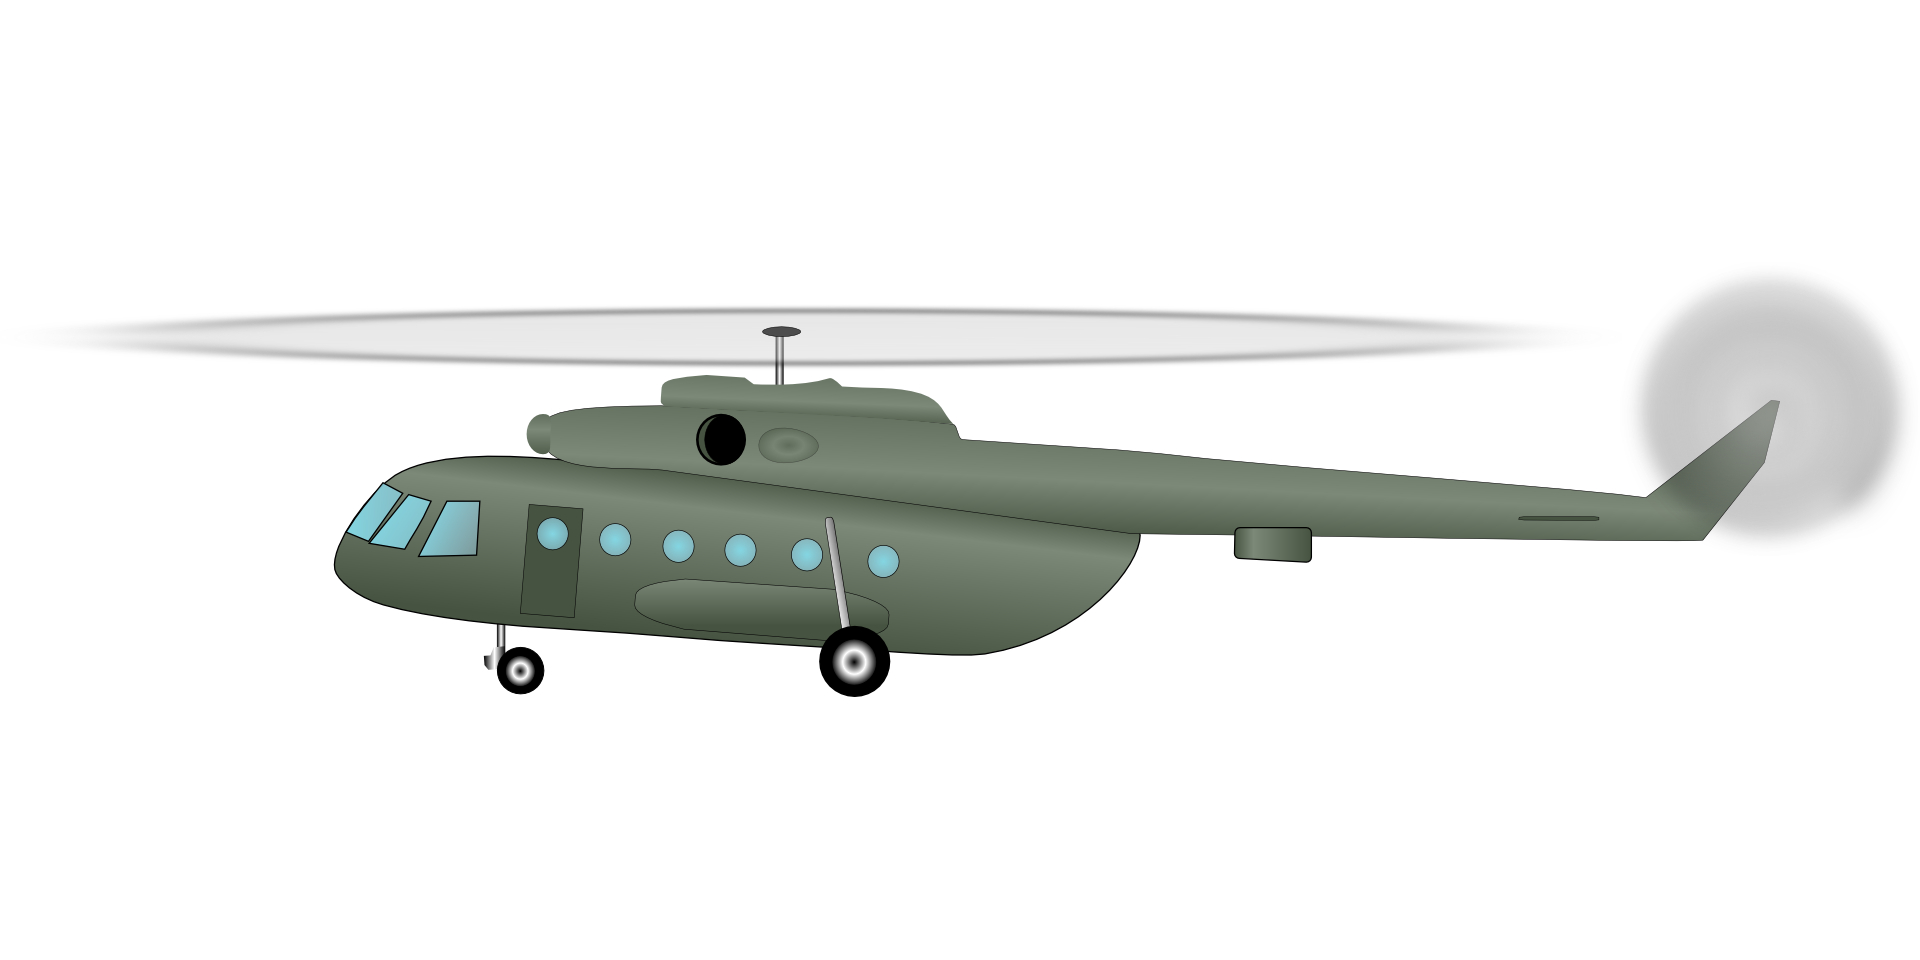 Military aircraft,helicopter,cartoon airplane vector